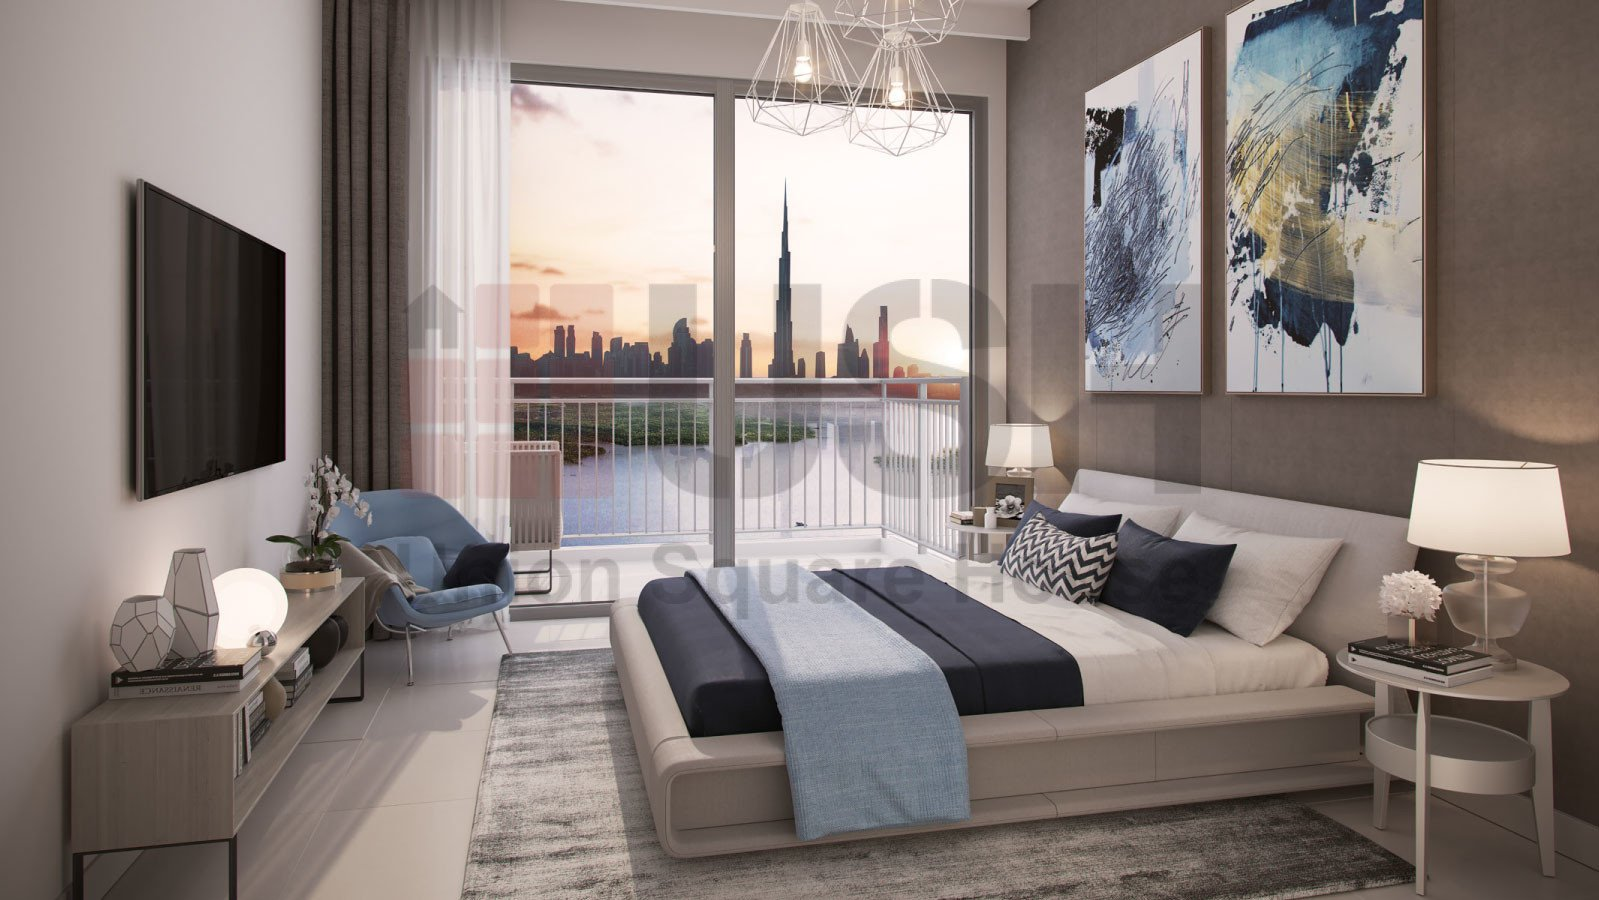 Ush 665557 two bedroom two bathroom apartment for sale 2 bedroom apartments for sale in dubai